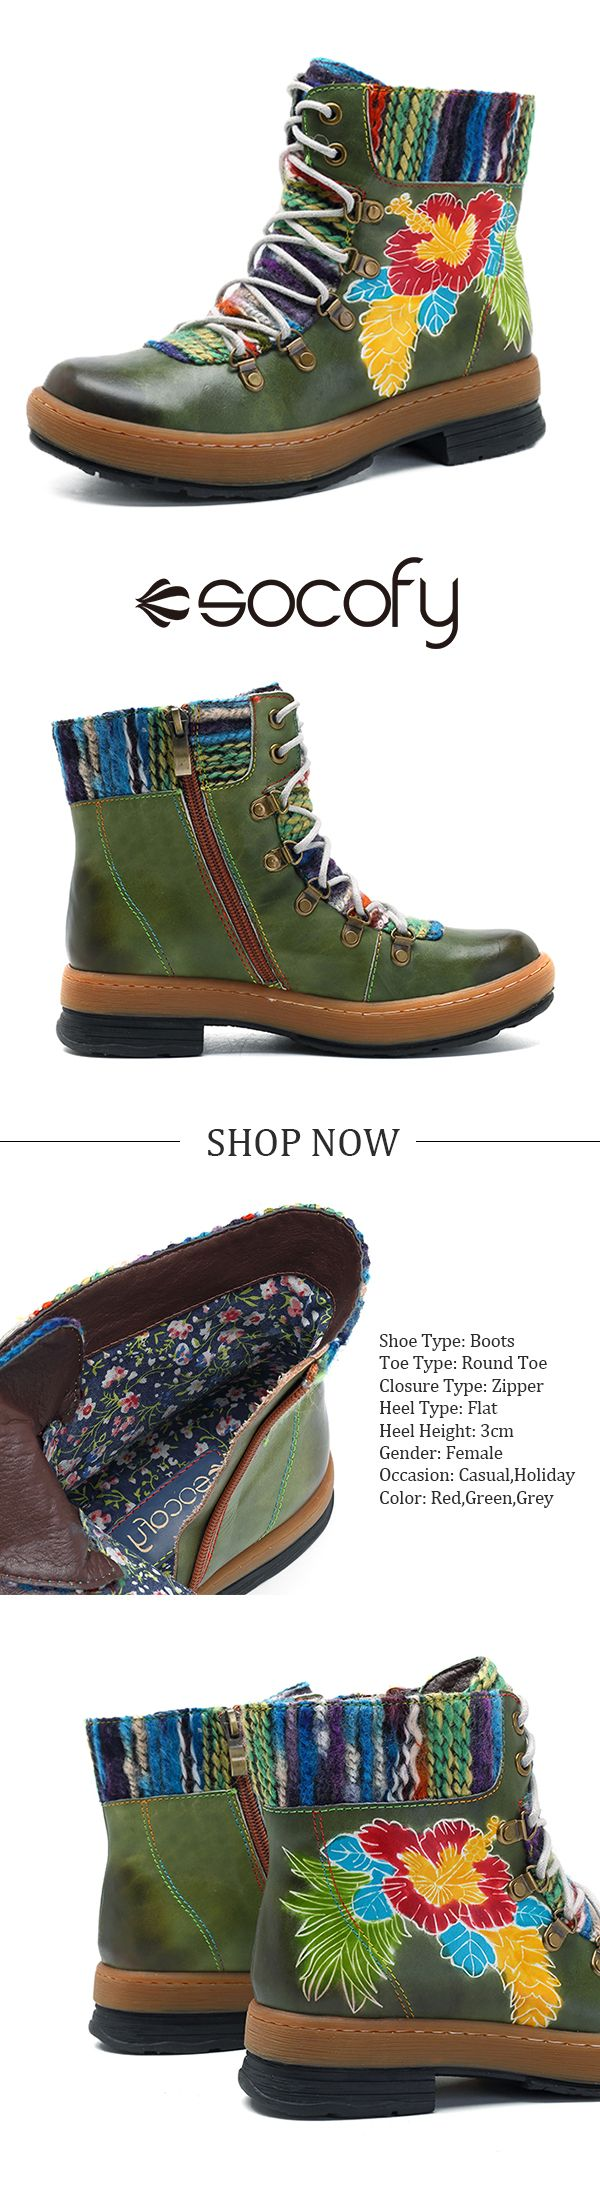 US$59.90 SOCOFY Bohemian Handmade Pattern Lace Up Ankle Flat Leather Boots